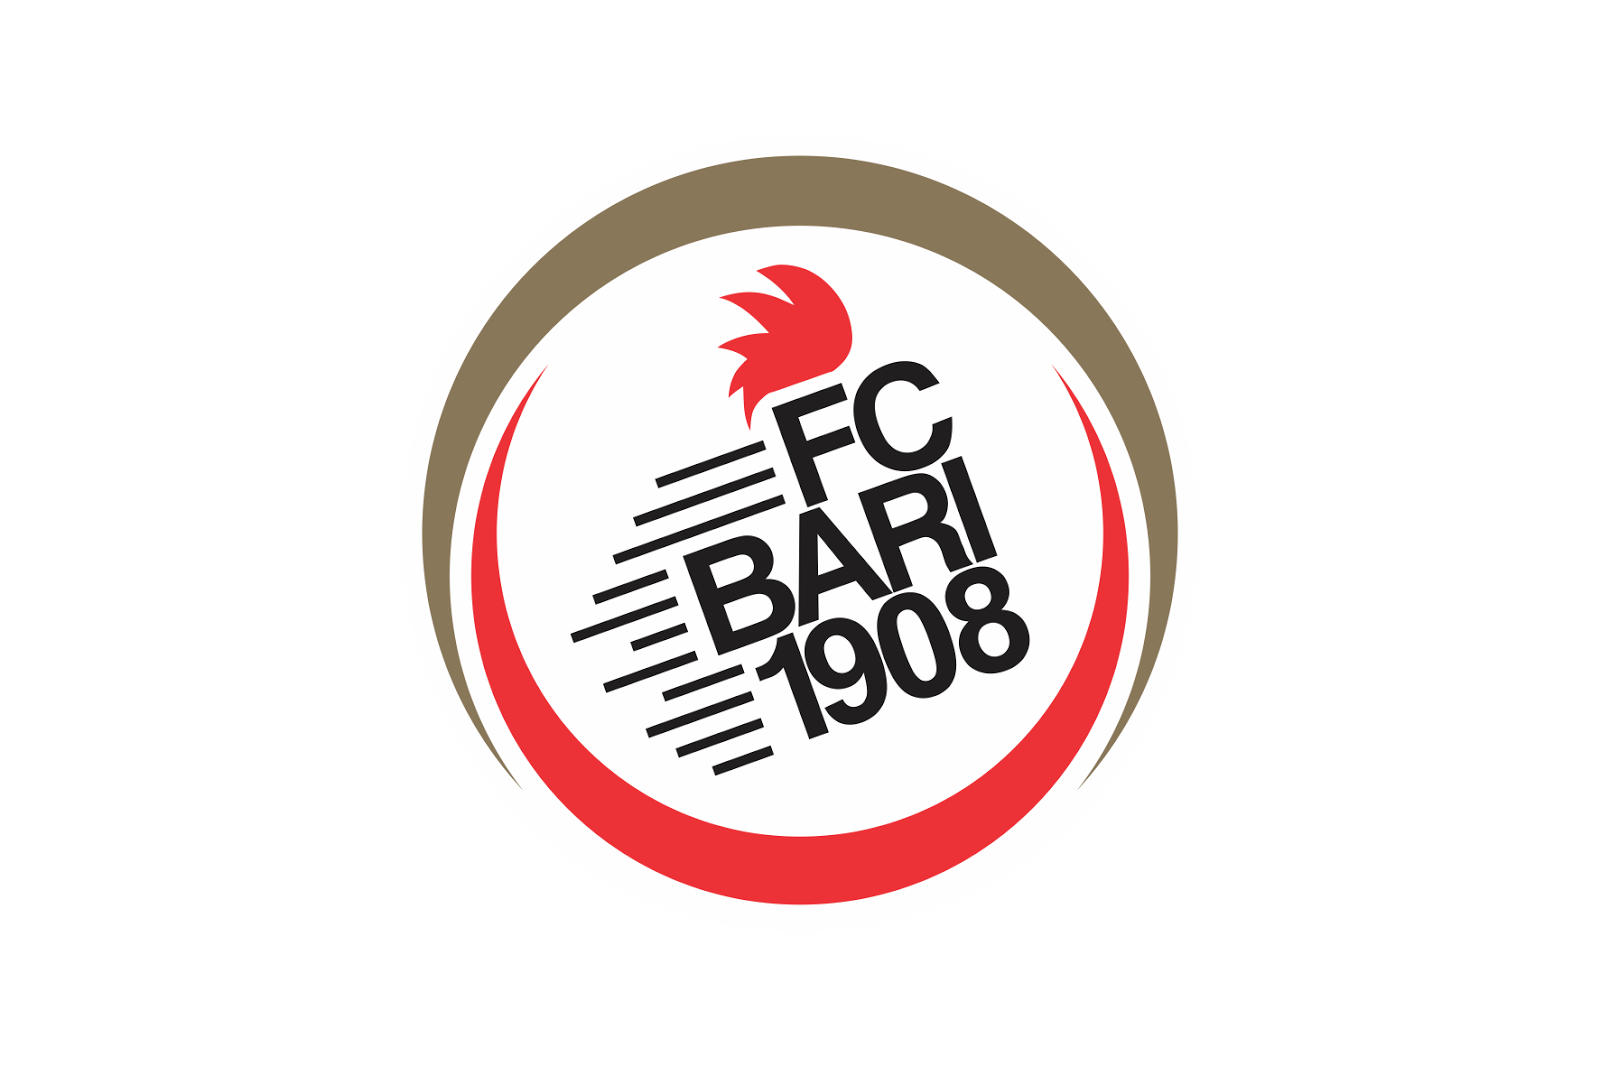 fc bari 1908, bed bath and beyond logo png 5805